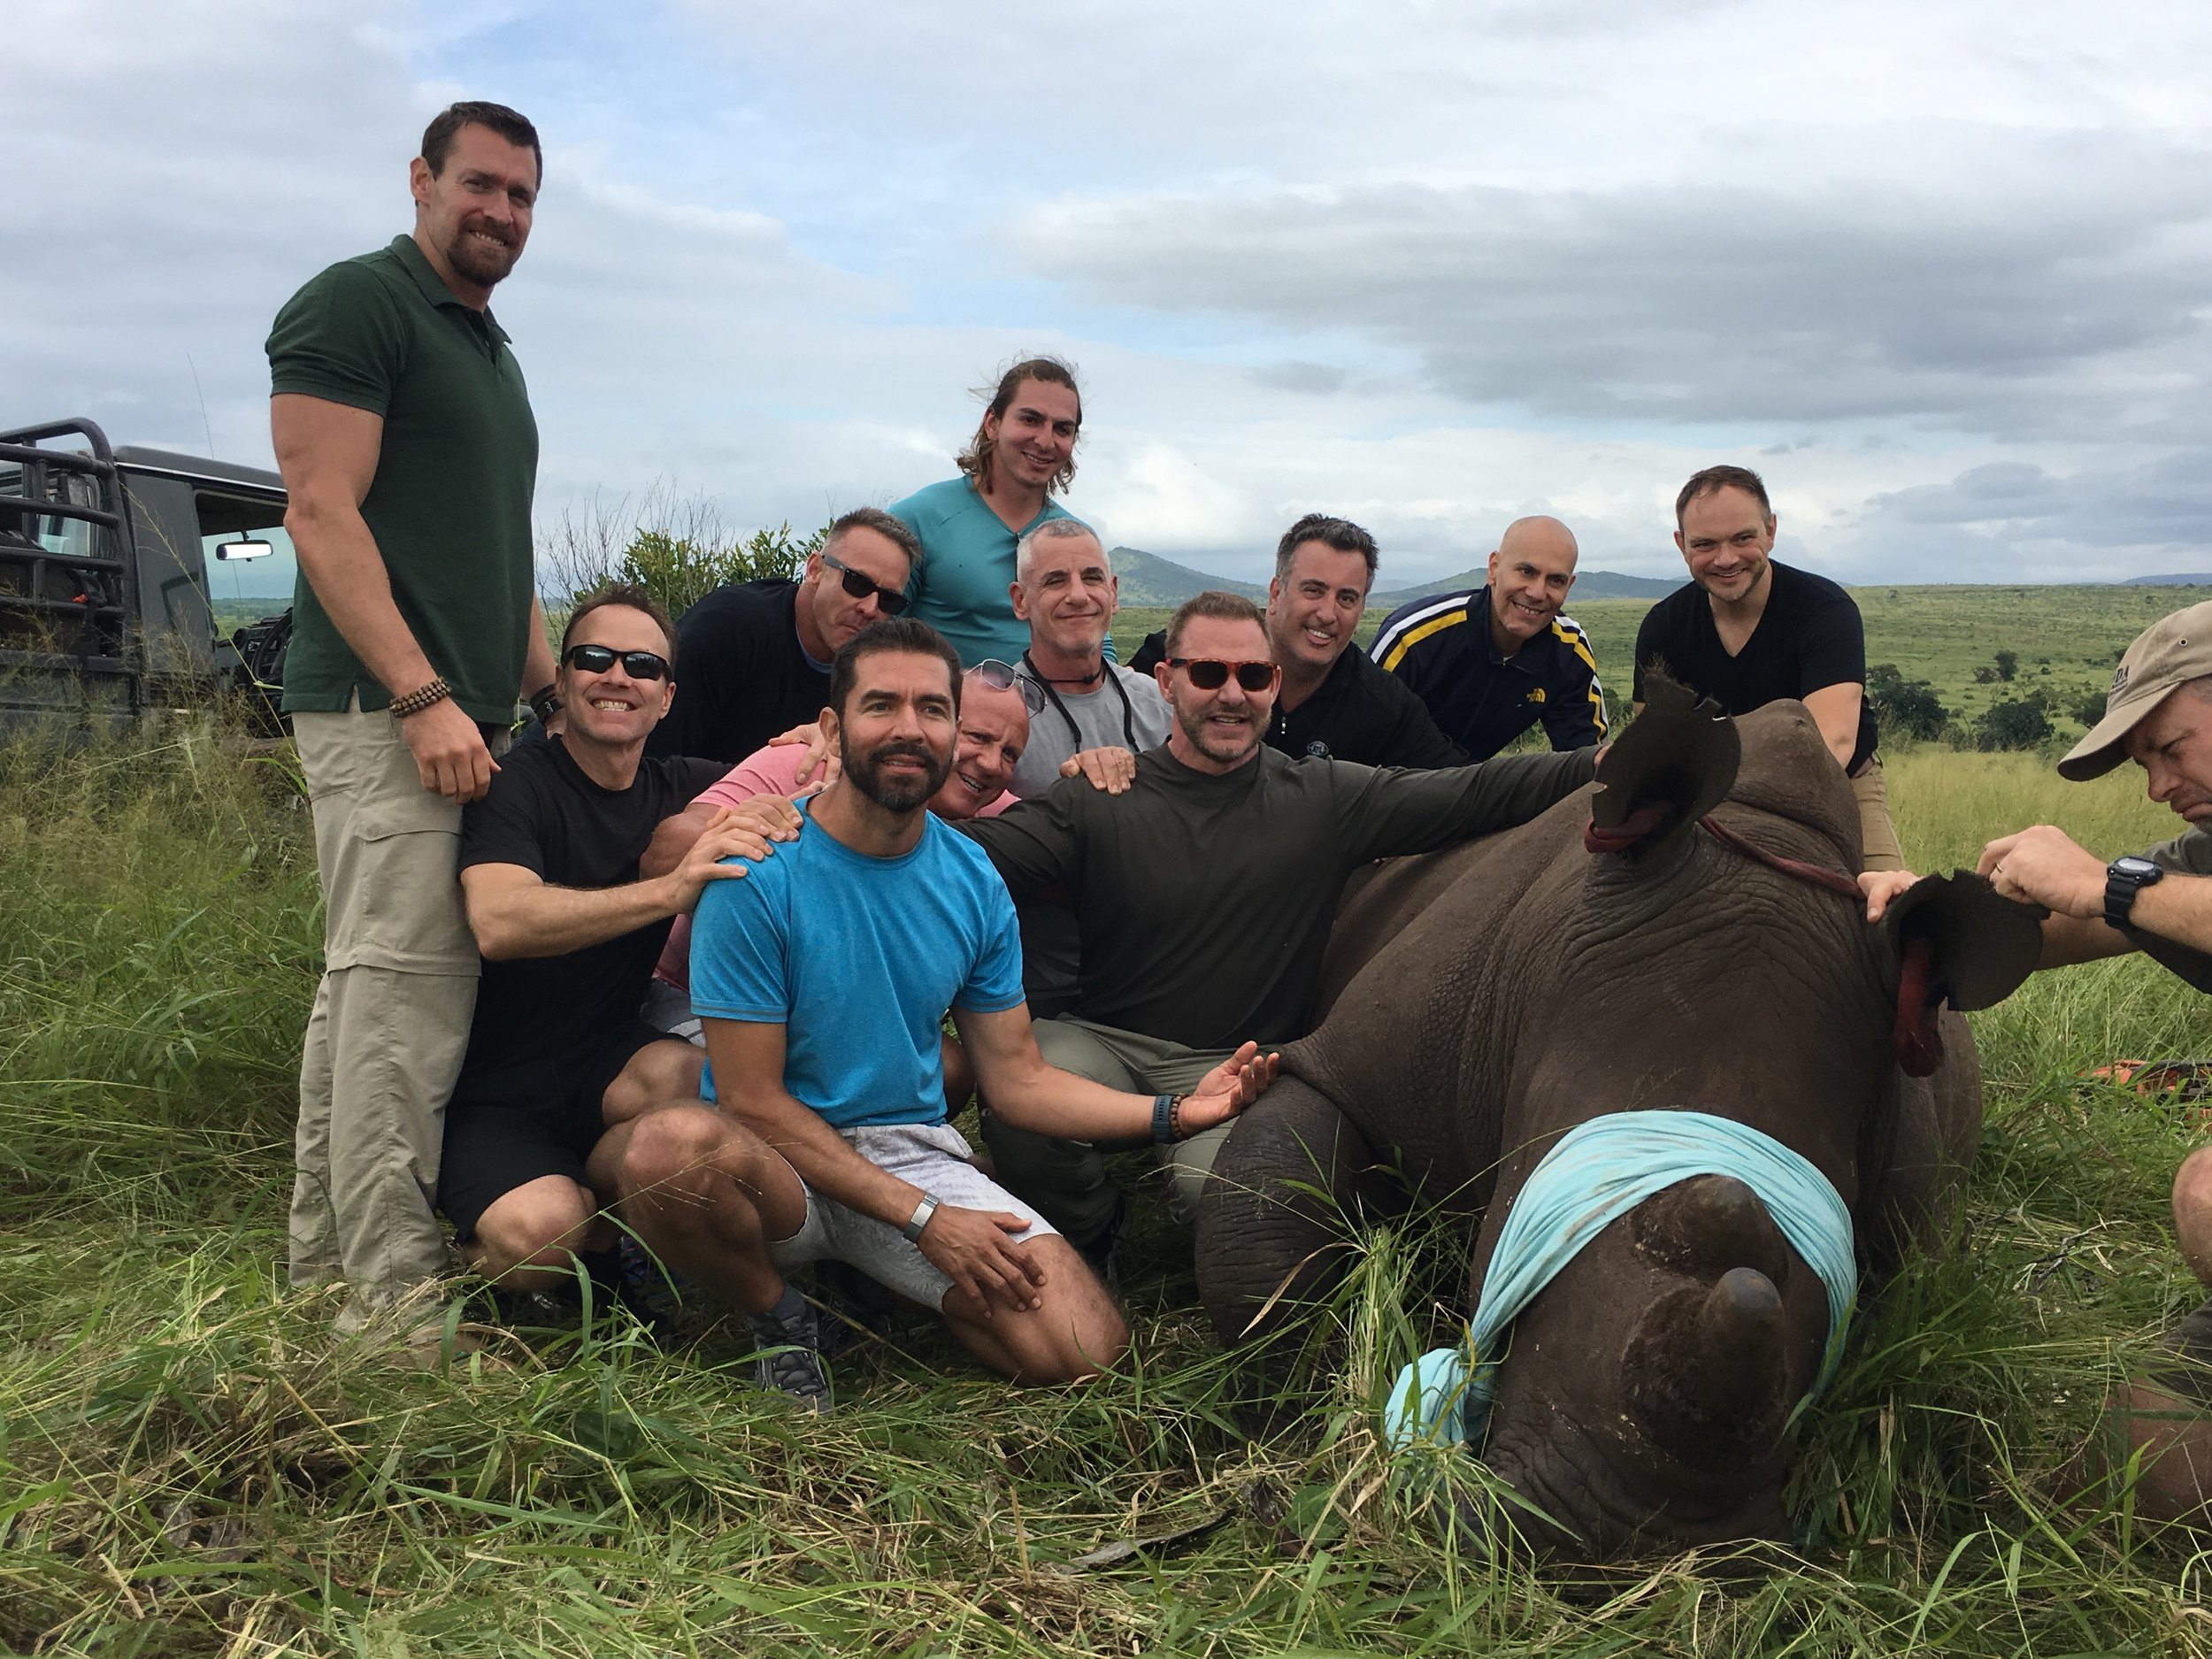 JOIN US - Man Ex will be running privately funded Rhino Project Conservation trips each year for those who want to get